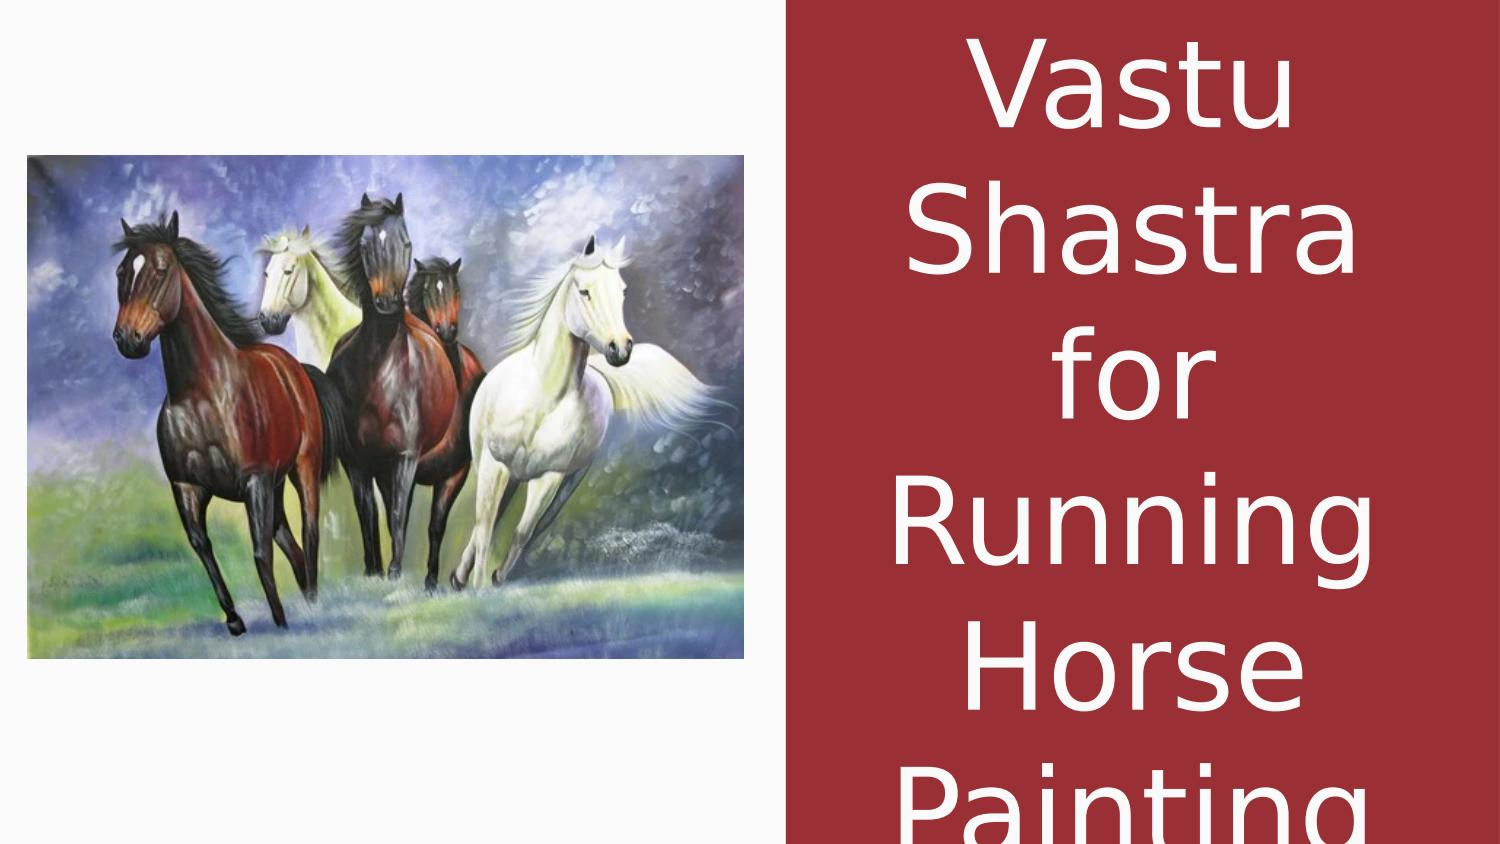 Vastu Shastra For Running Horse Painting By Harshita Digiexcel Issuu